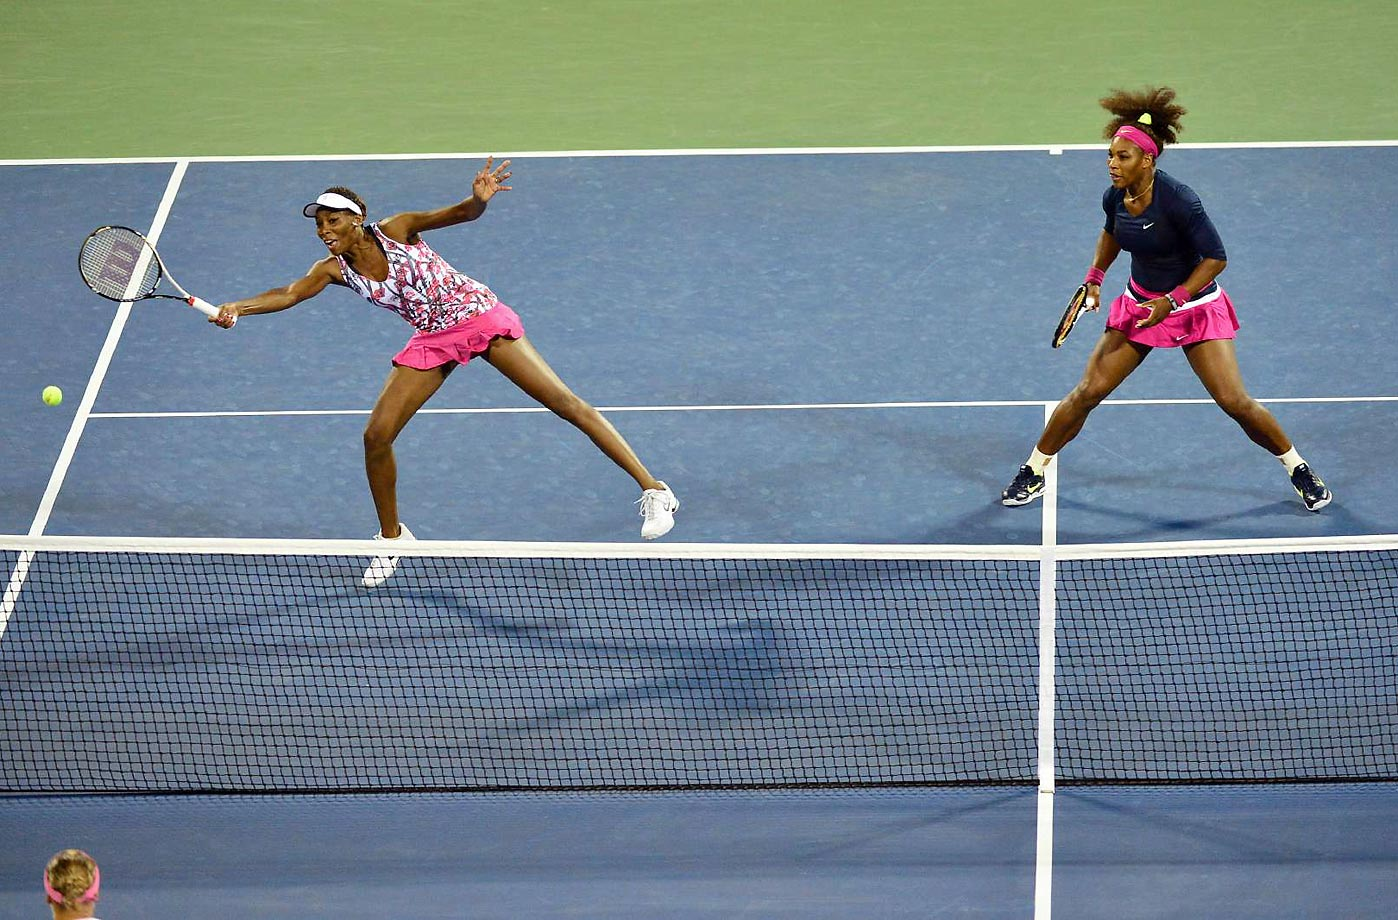 The Williams sisters have both spent time as the top-ranked women's singles players. At one point they held the No. 1 and No. 2 spots and were the No. 1 women's doubles team.